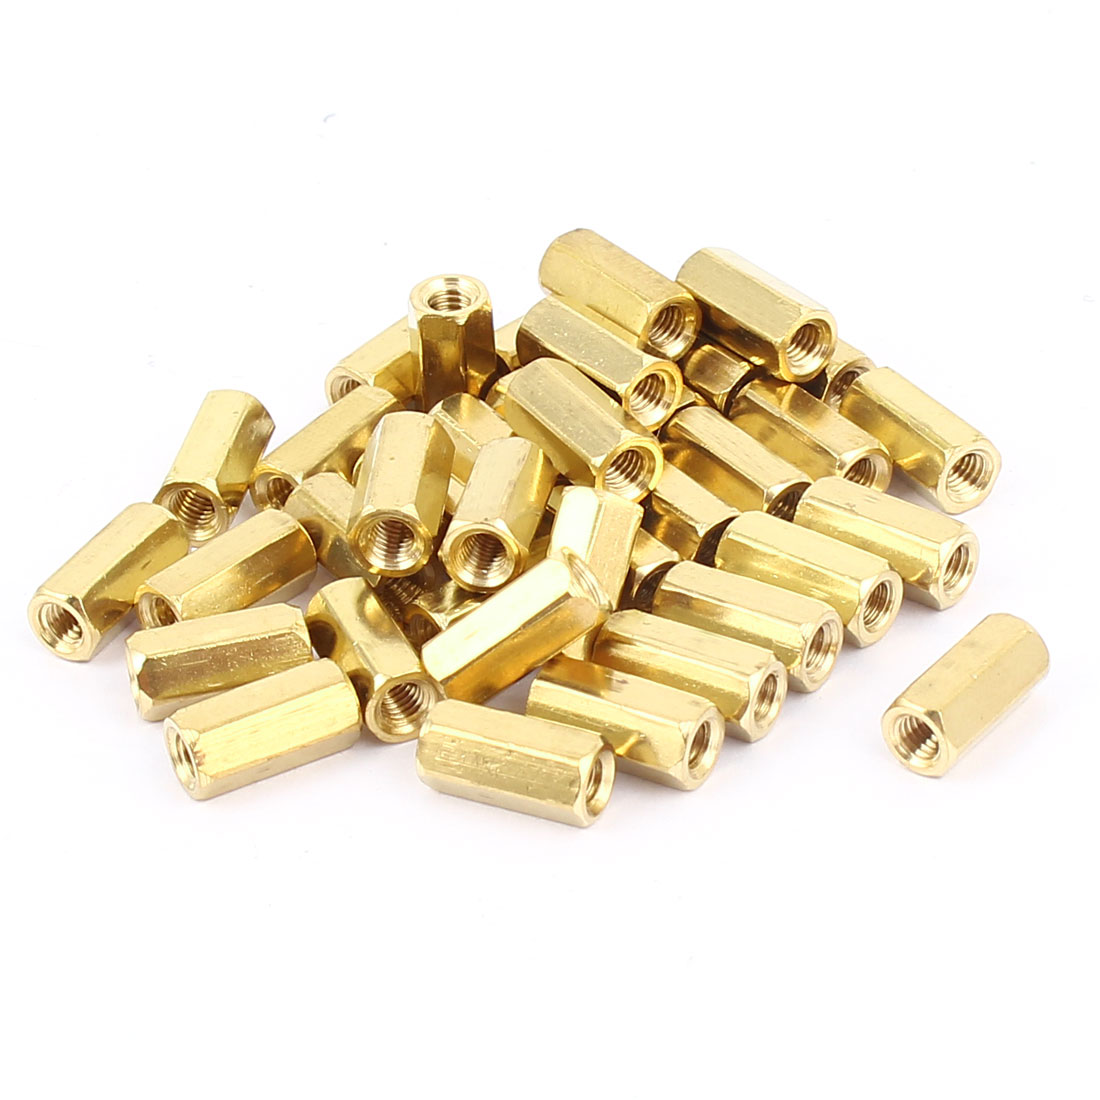 38 Pcs M3x10mm Female Brass Spacer Hex Standoff Screw Pillar Gold Tone